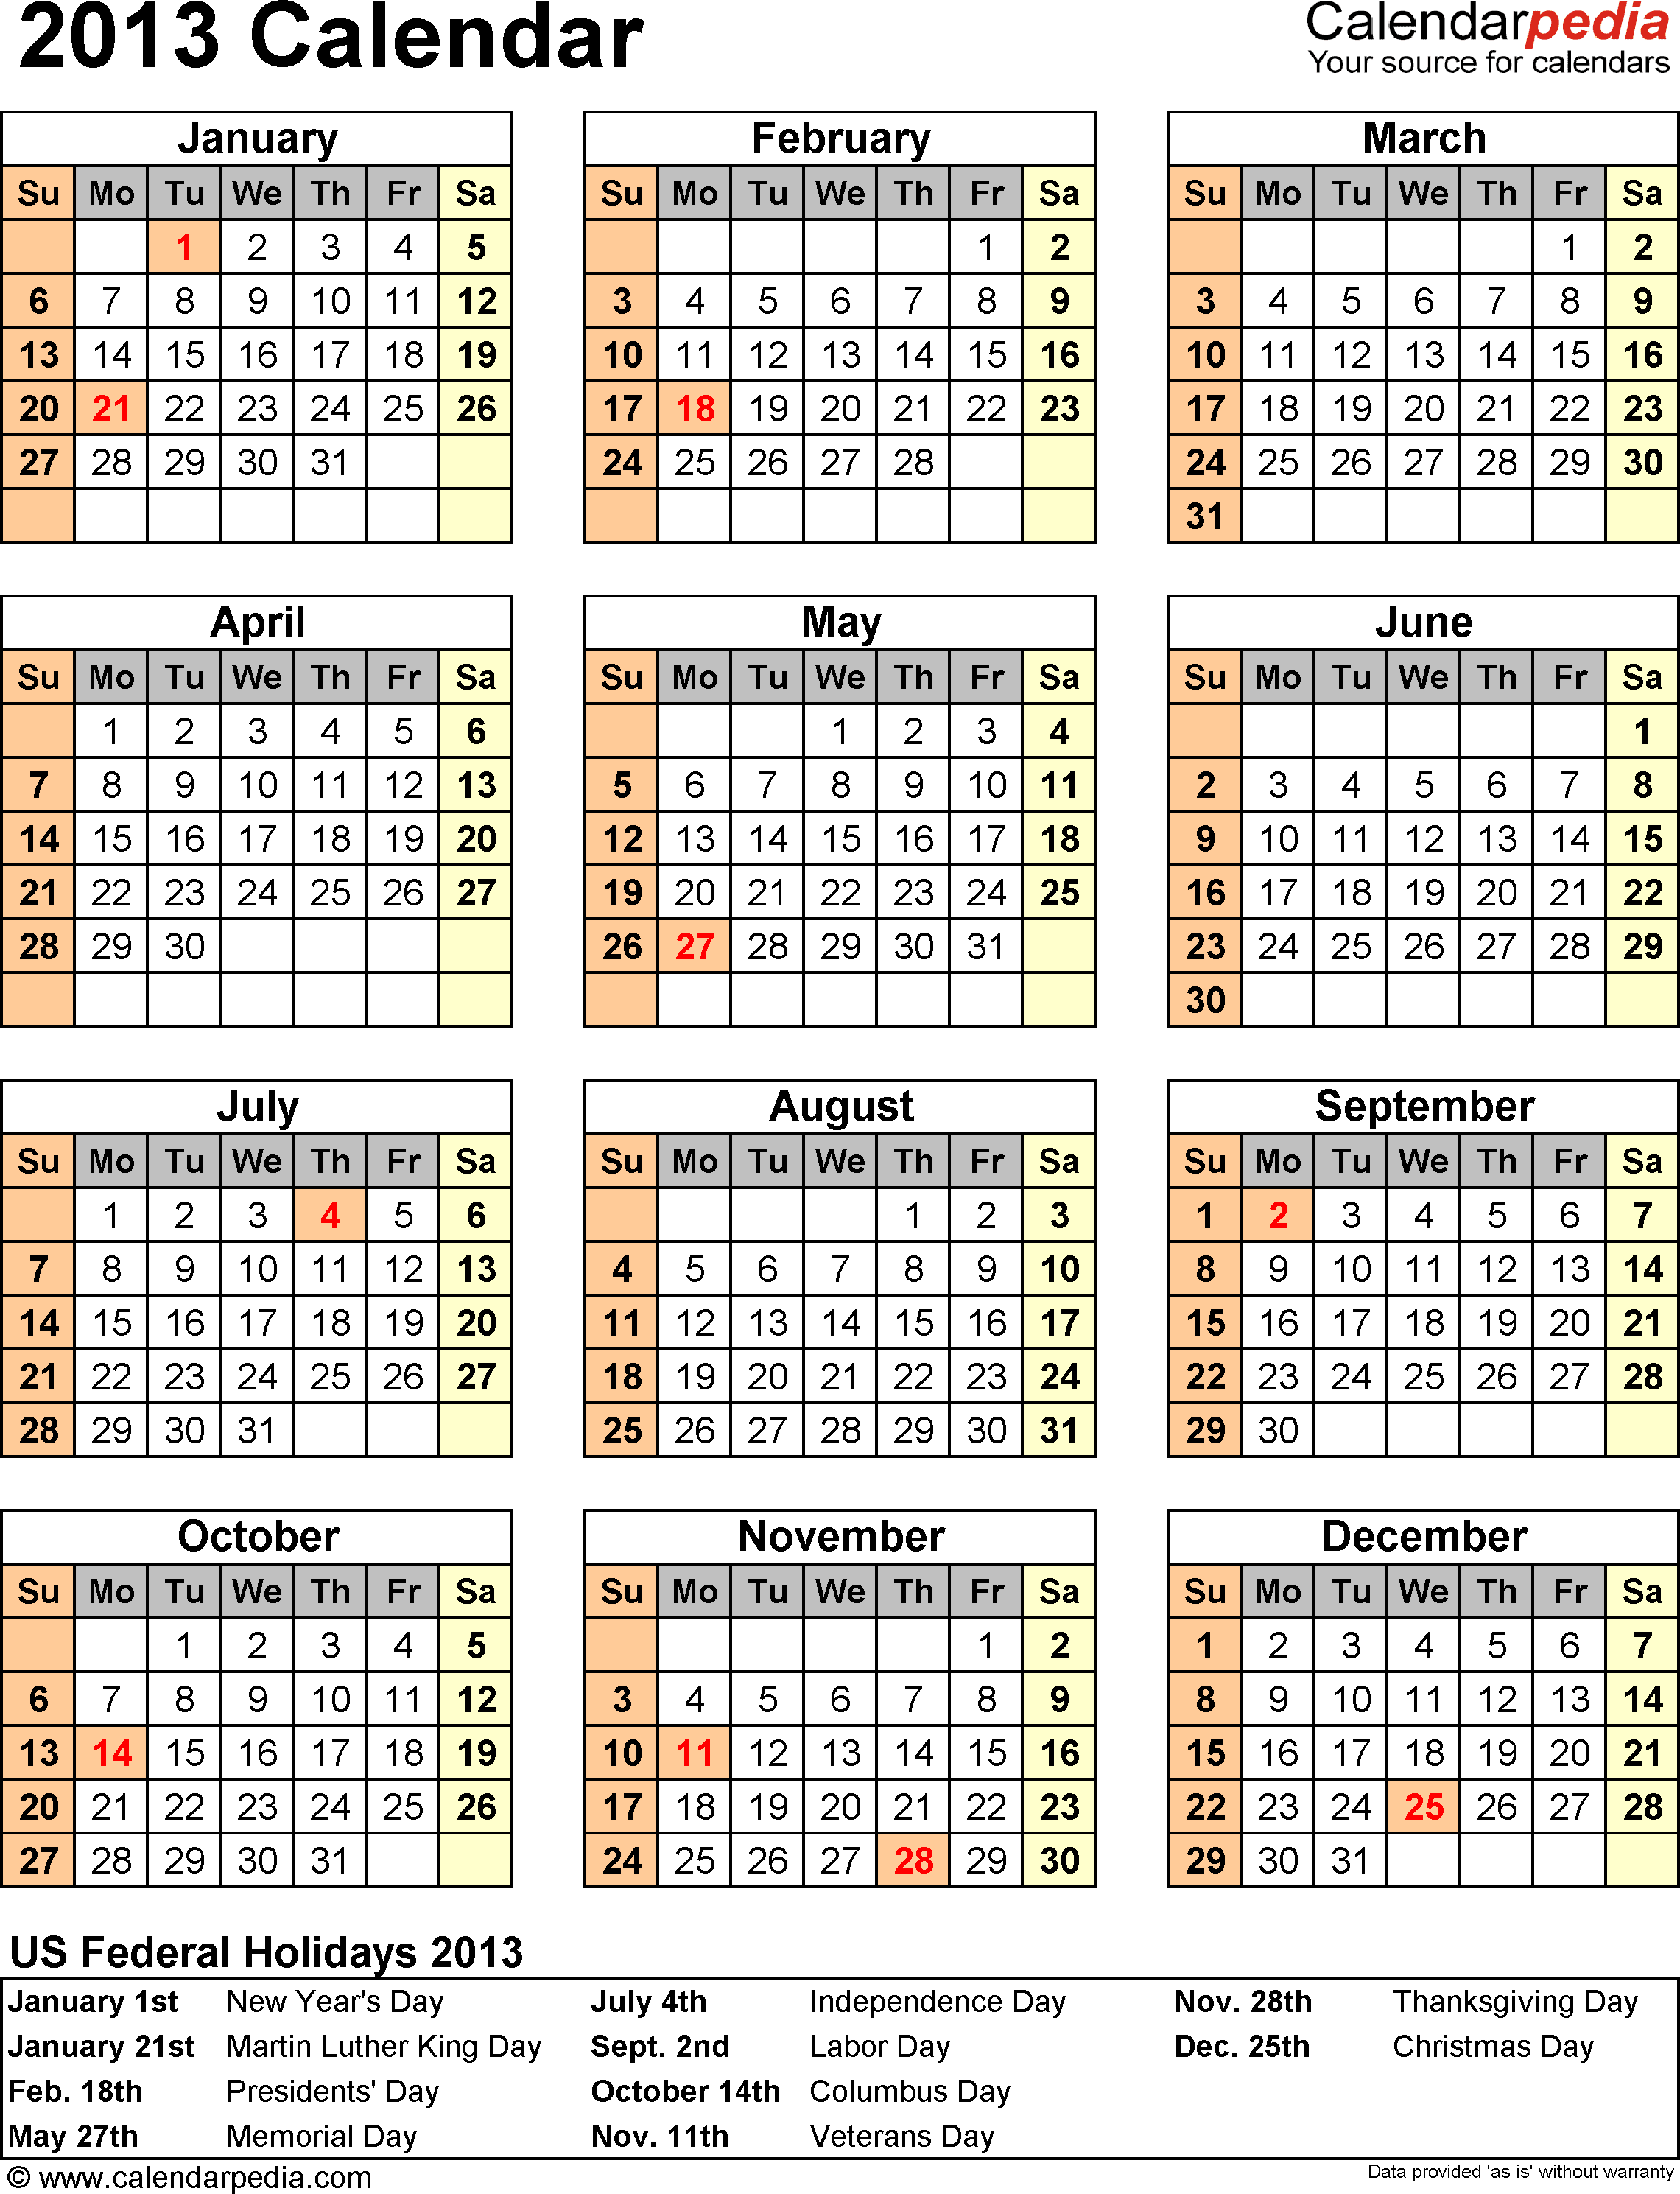 Download Word template for 2013 calendar template 11: portrait orientation, 1 page, with US federal holidays 2013, paper format: US letter